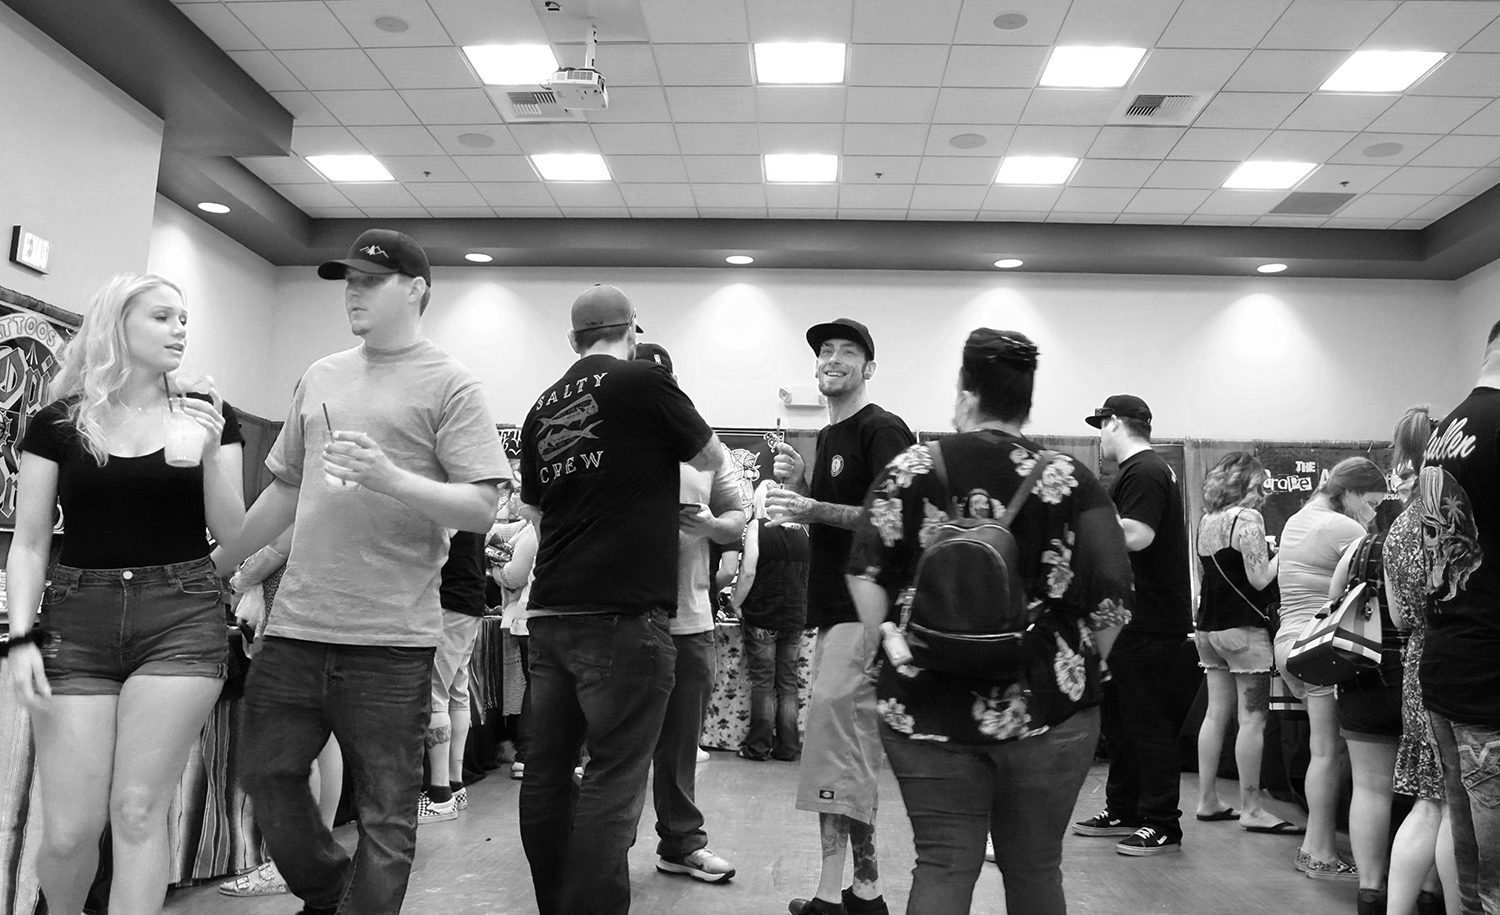 Spectators at the 5th annual feather falls tattoo expo